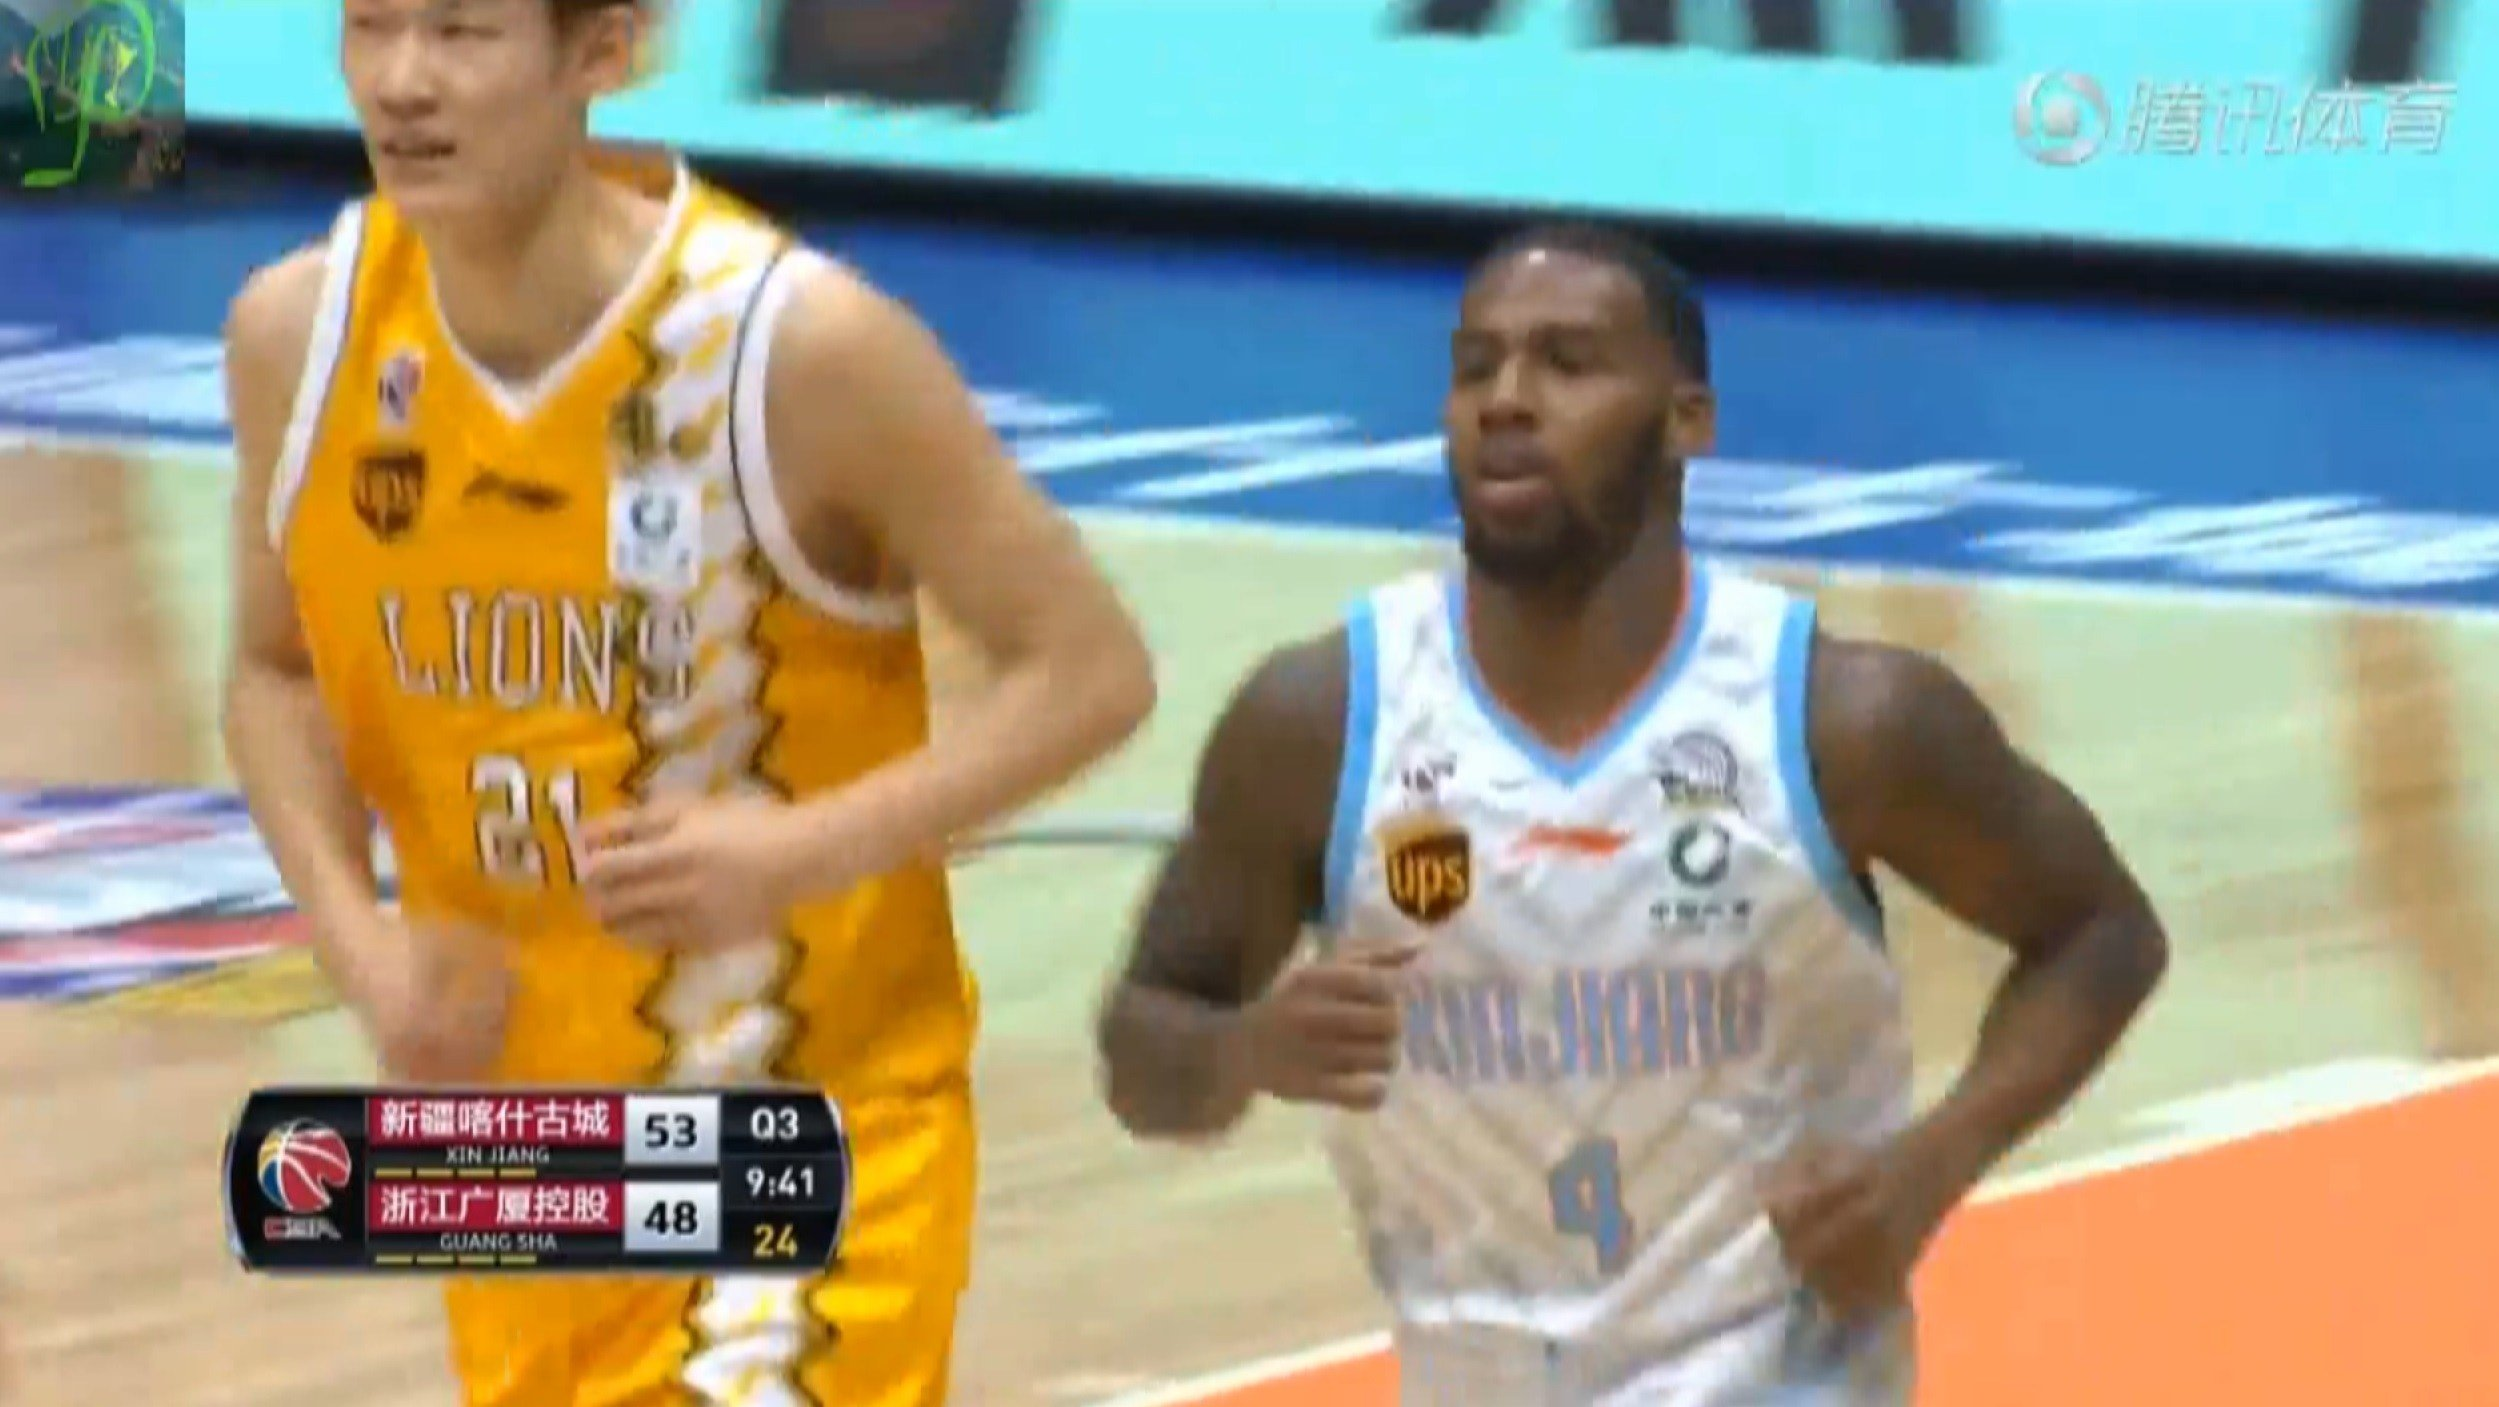 Decatur native Darius Adams currently leads the Chinese Basketball Association with 40.6 points per game.